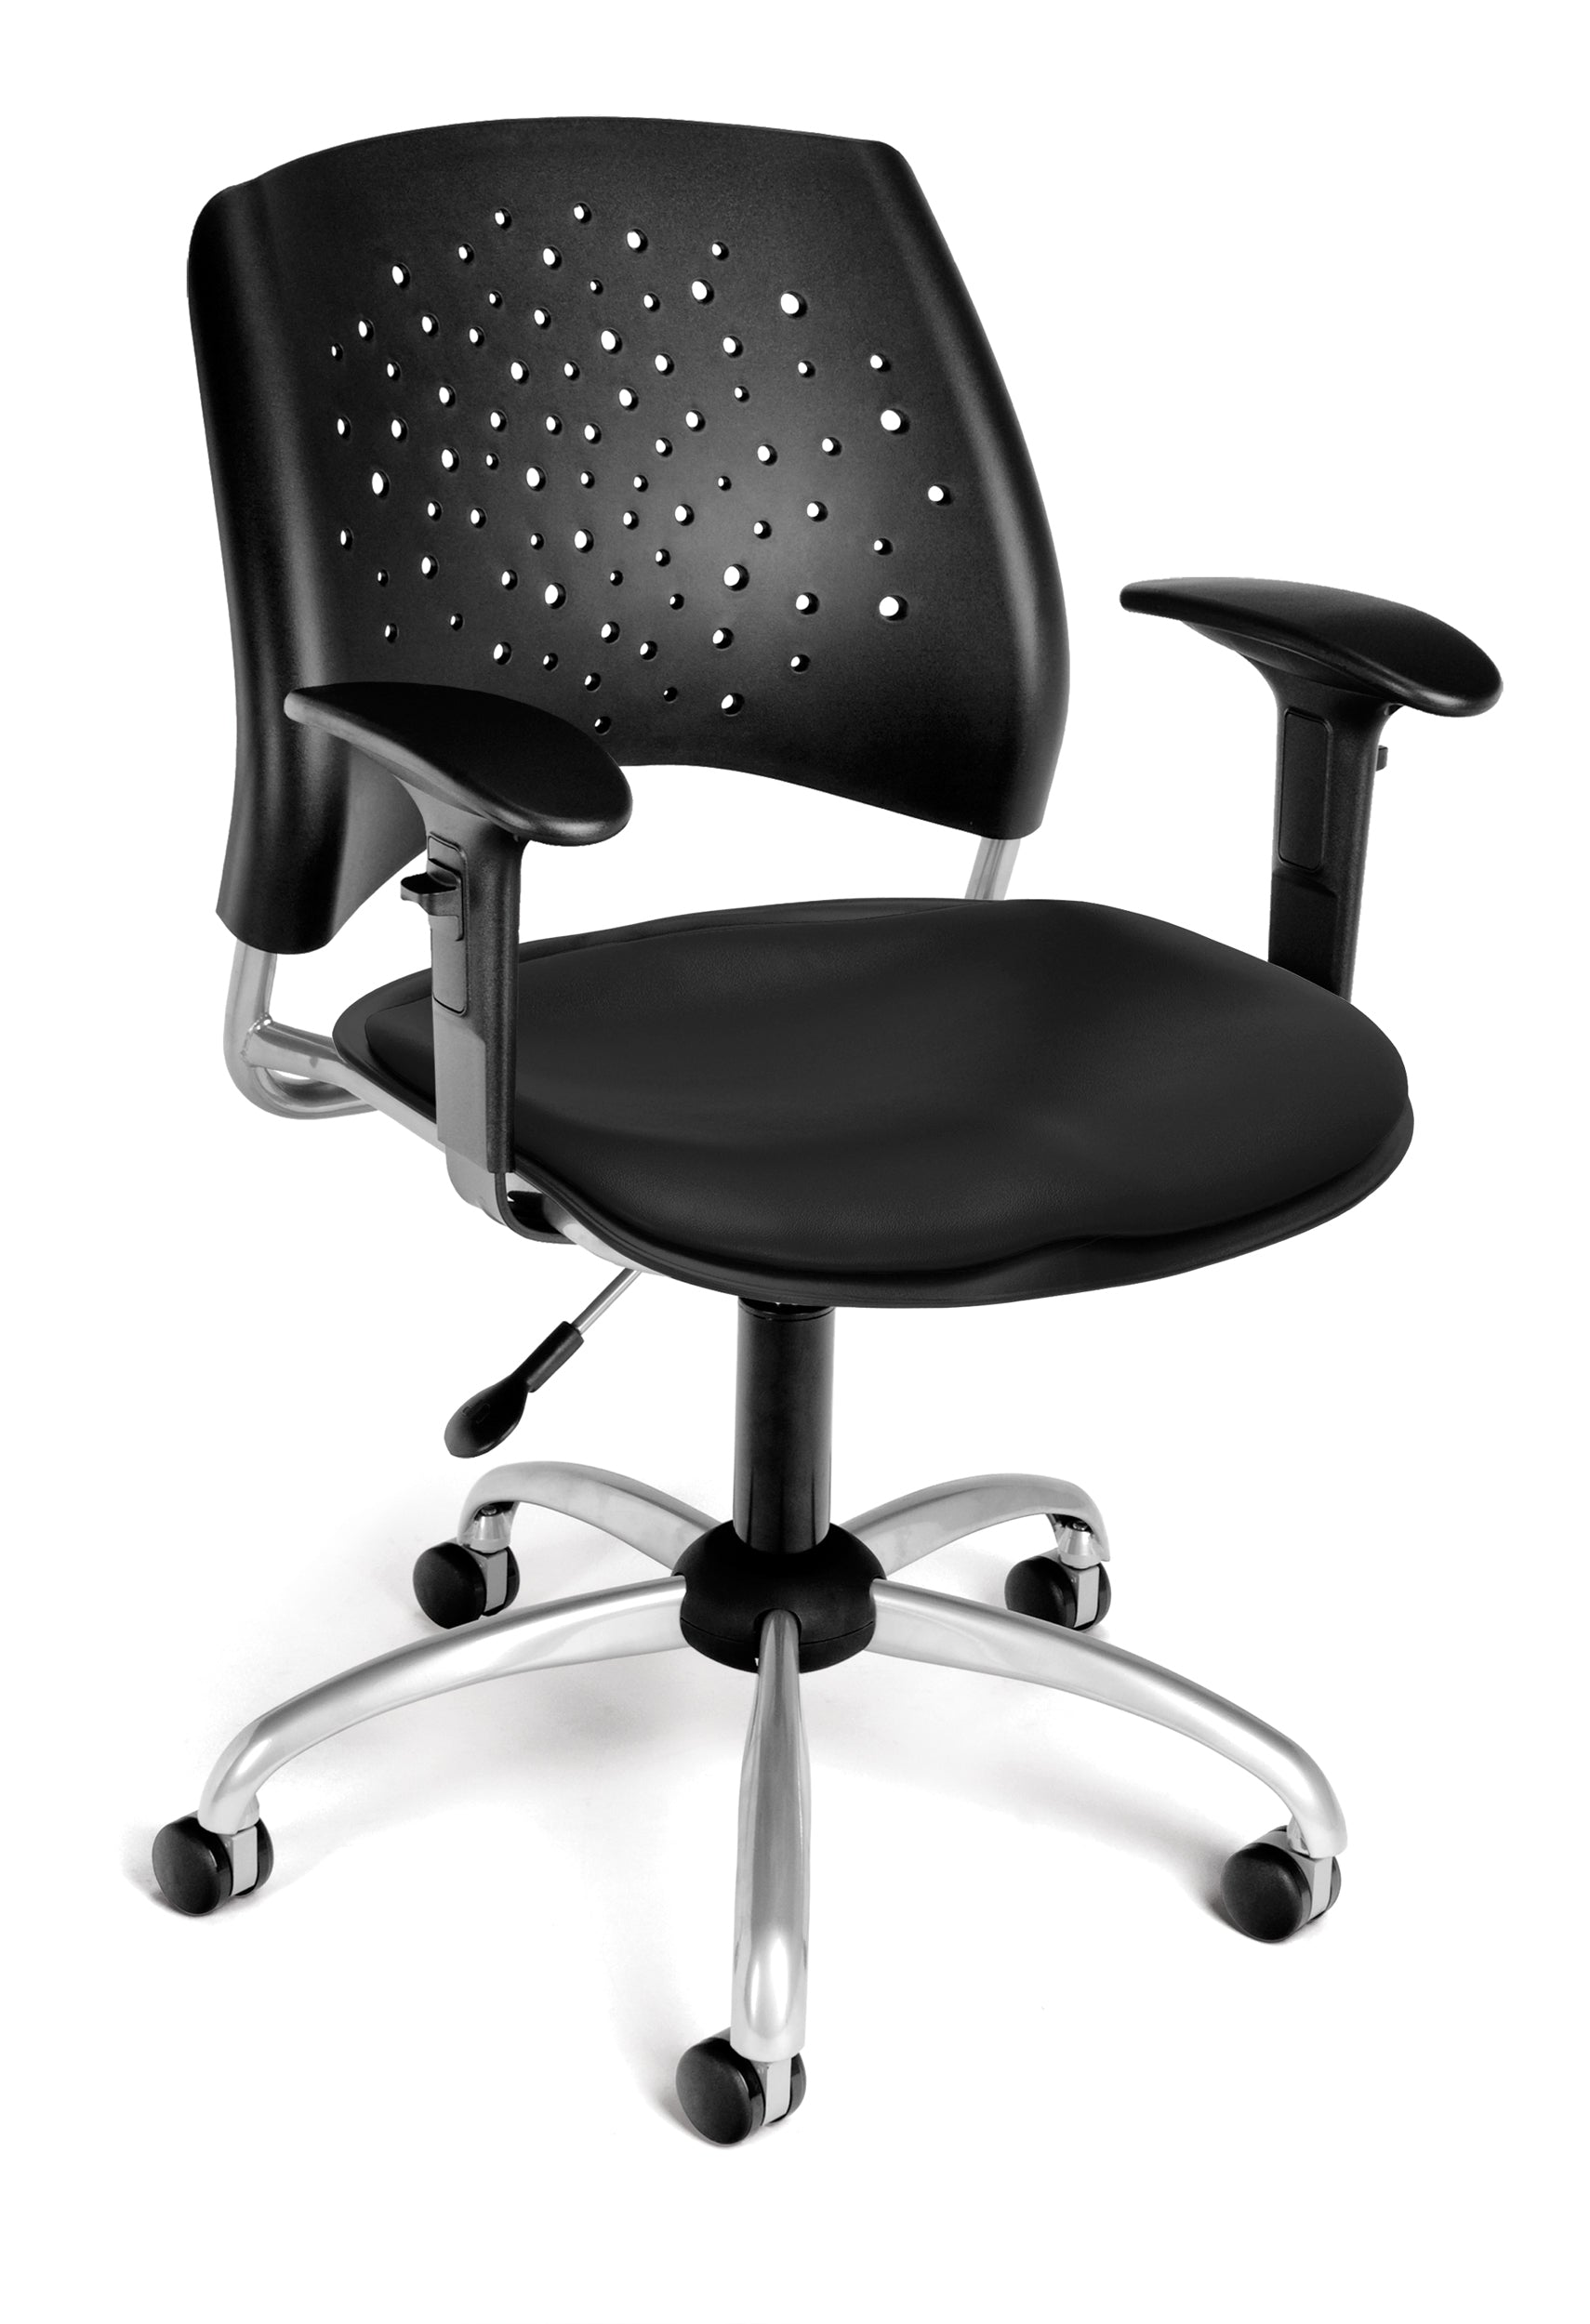 Ofminc Model 326-VAM-AA3 Stars Series Vinyl Swivel Arms Chair